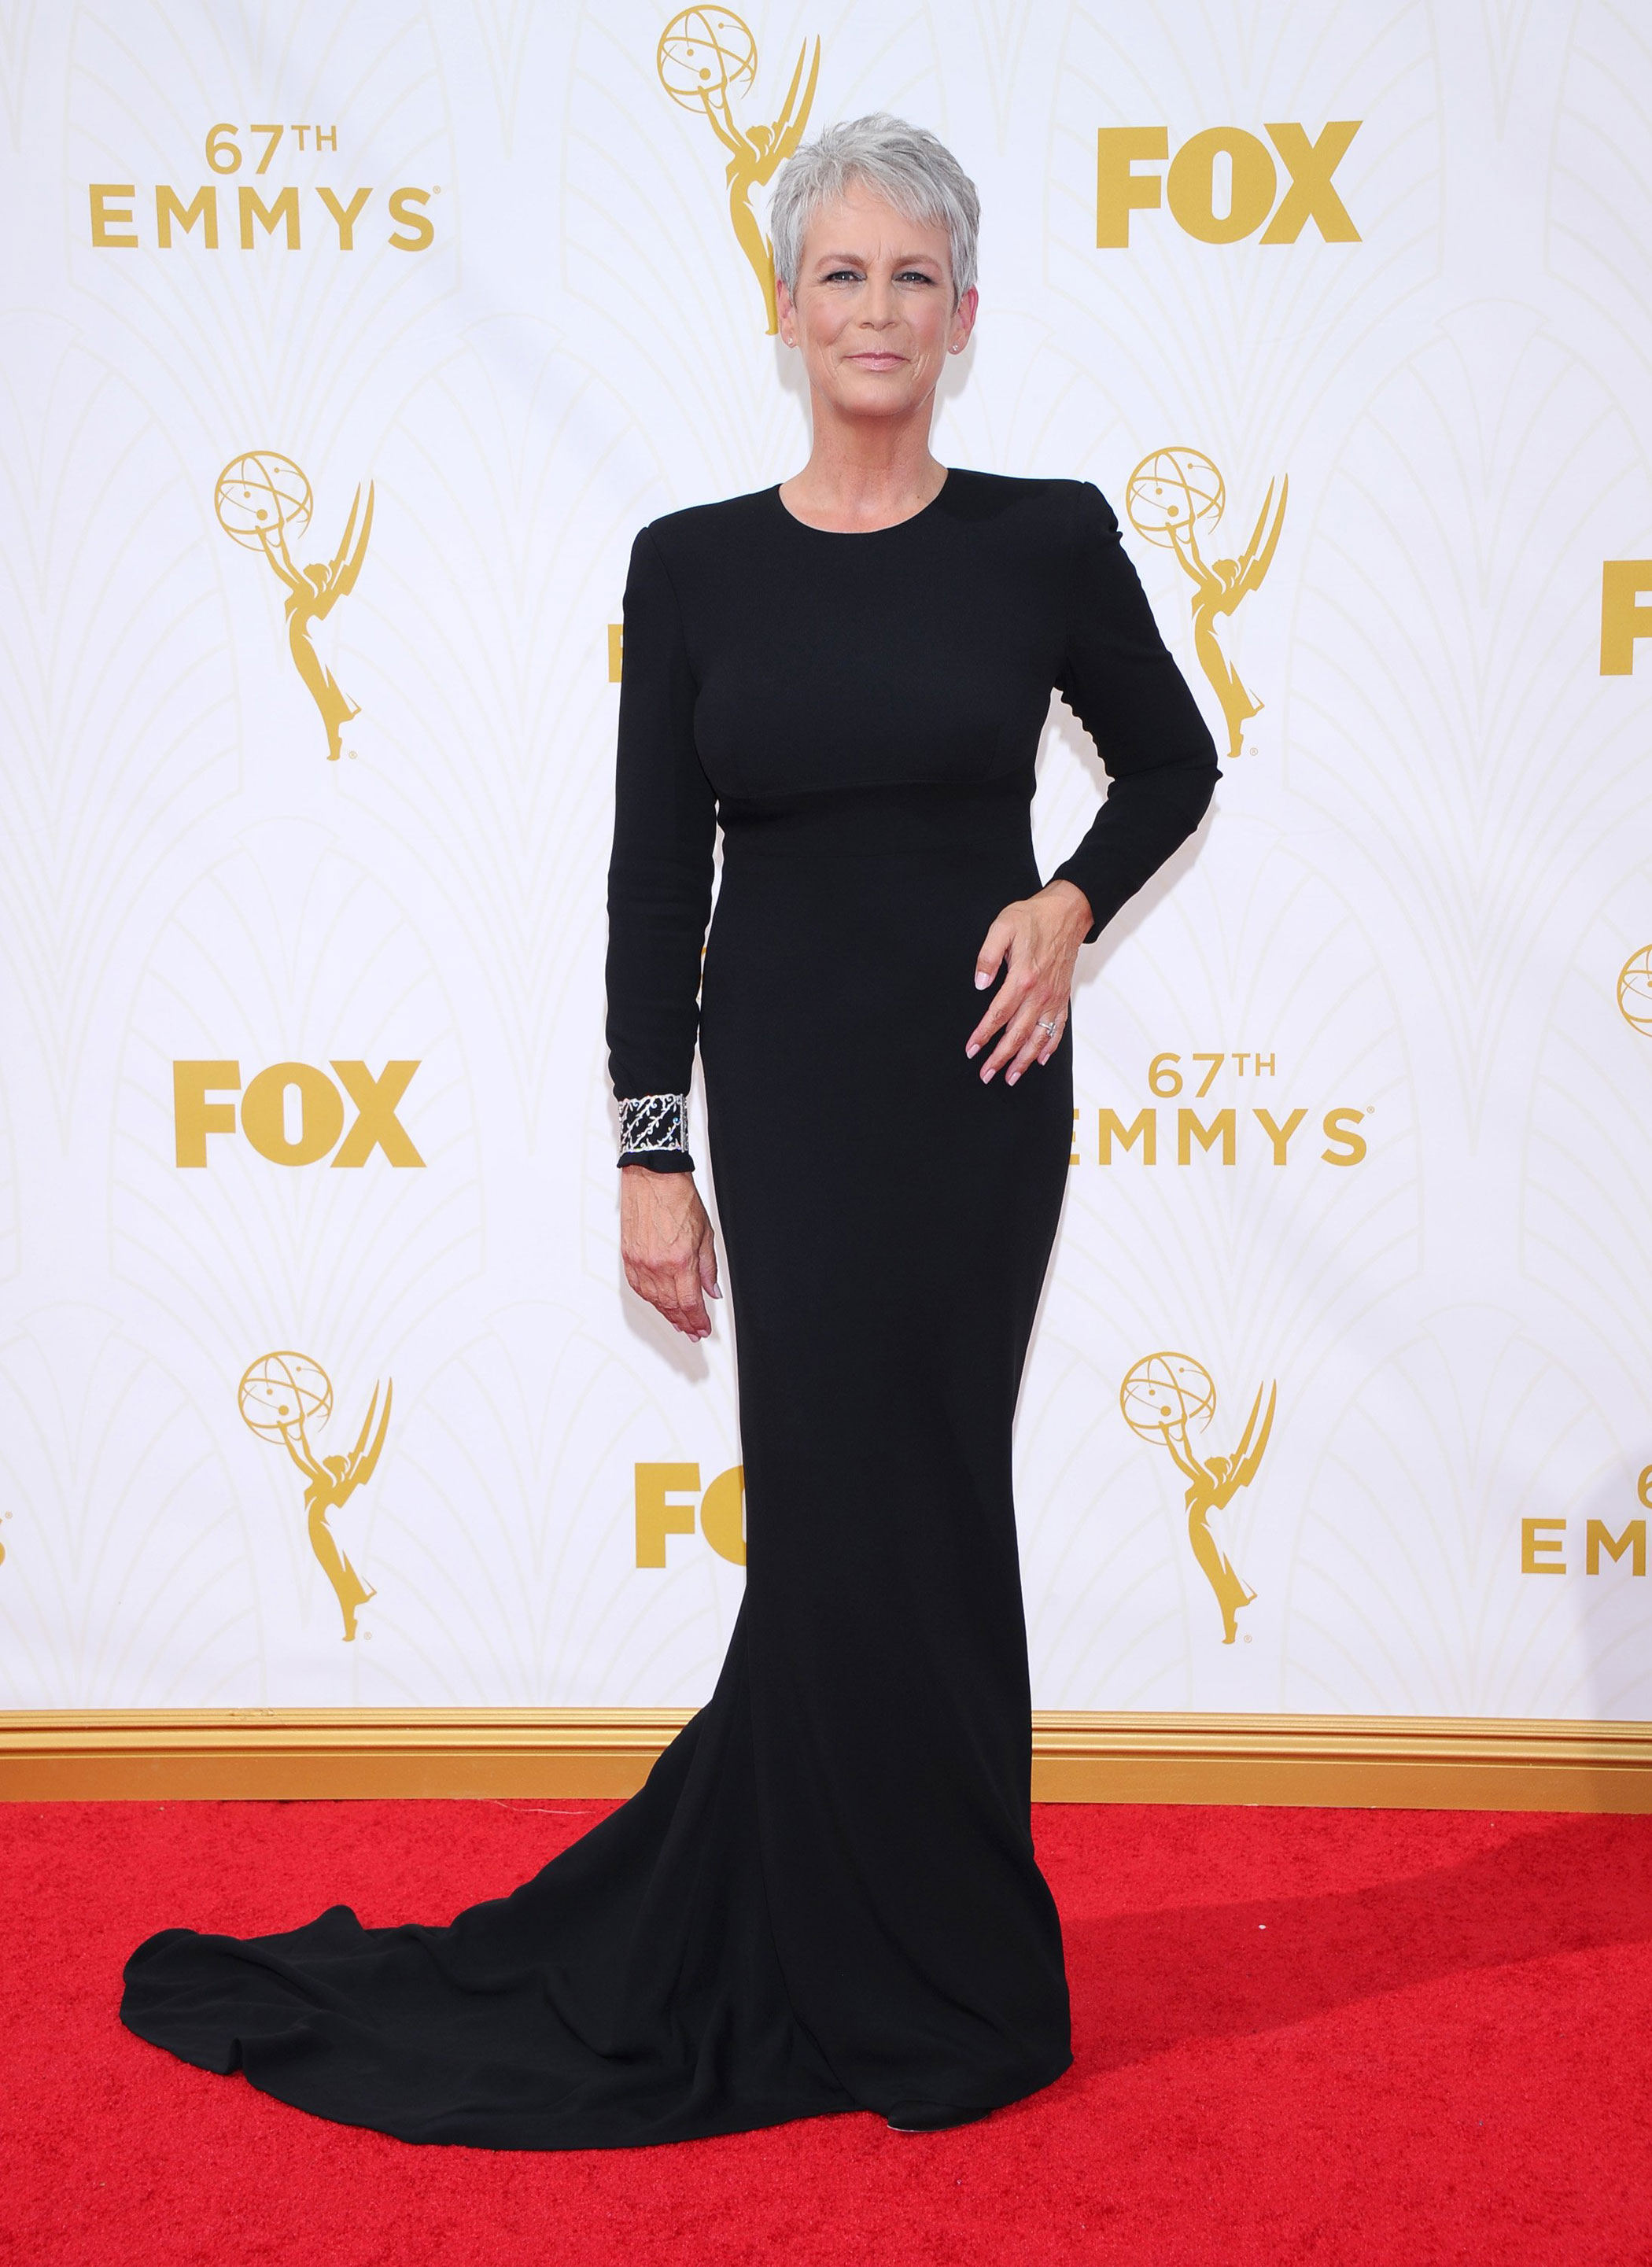 Jamie Lee Curtis at the 67th Emmy Award on Sept. 20, 2015 in Los Angeles.